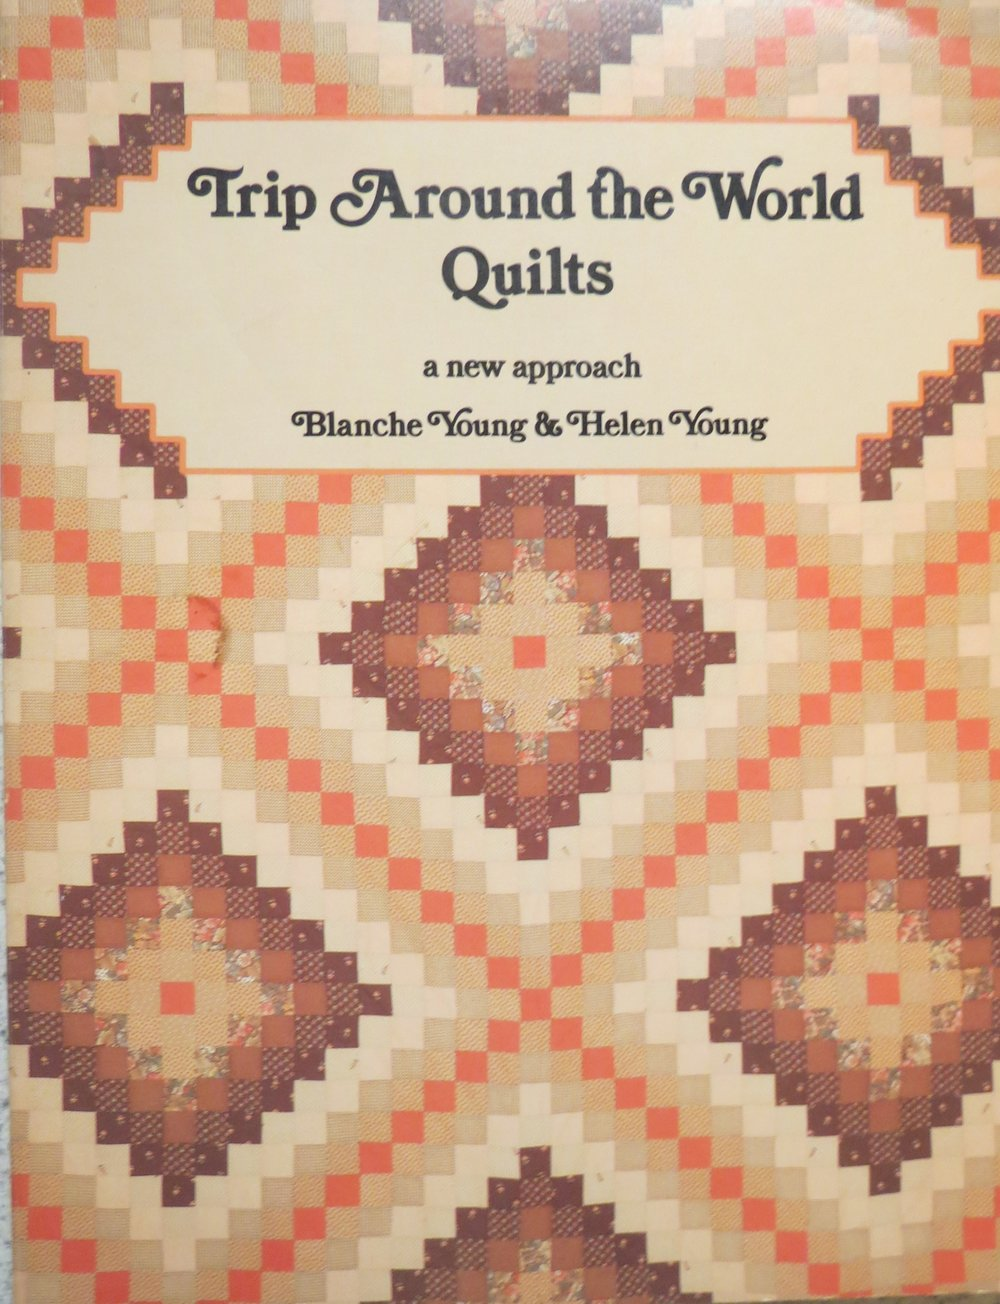 Trip Around the World Quilts: a New Approach by Blanche Young & Helen Young